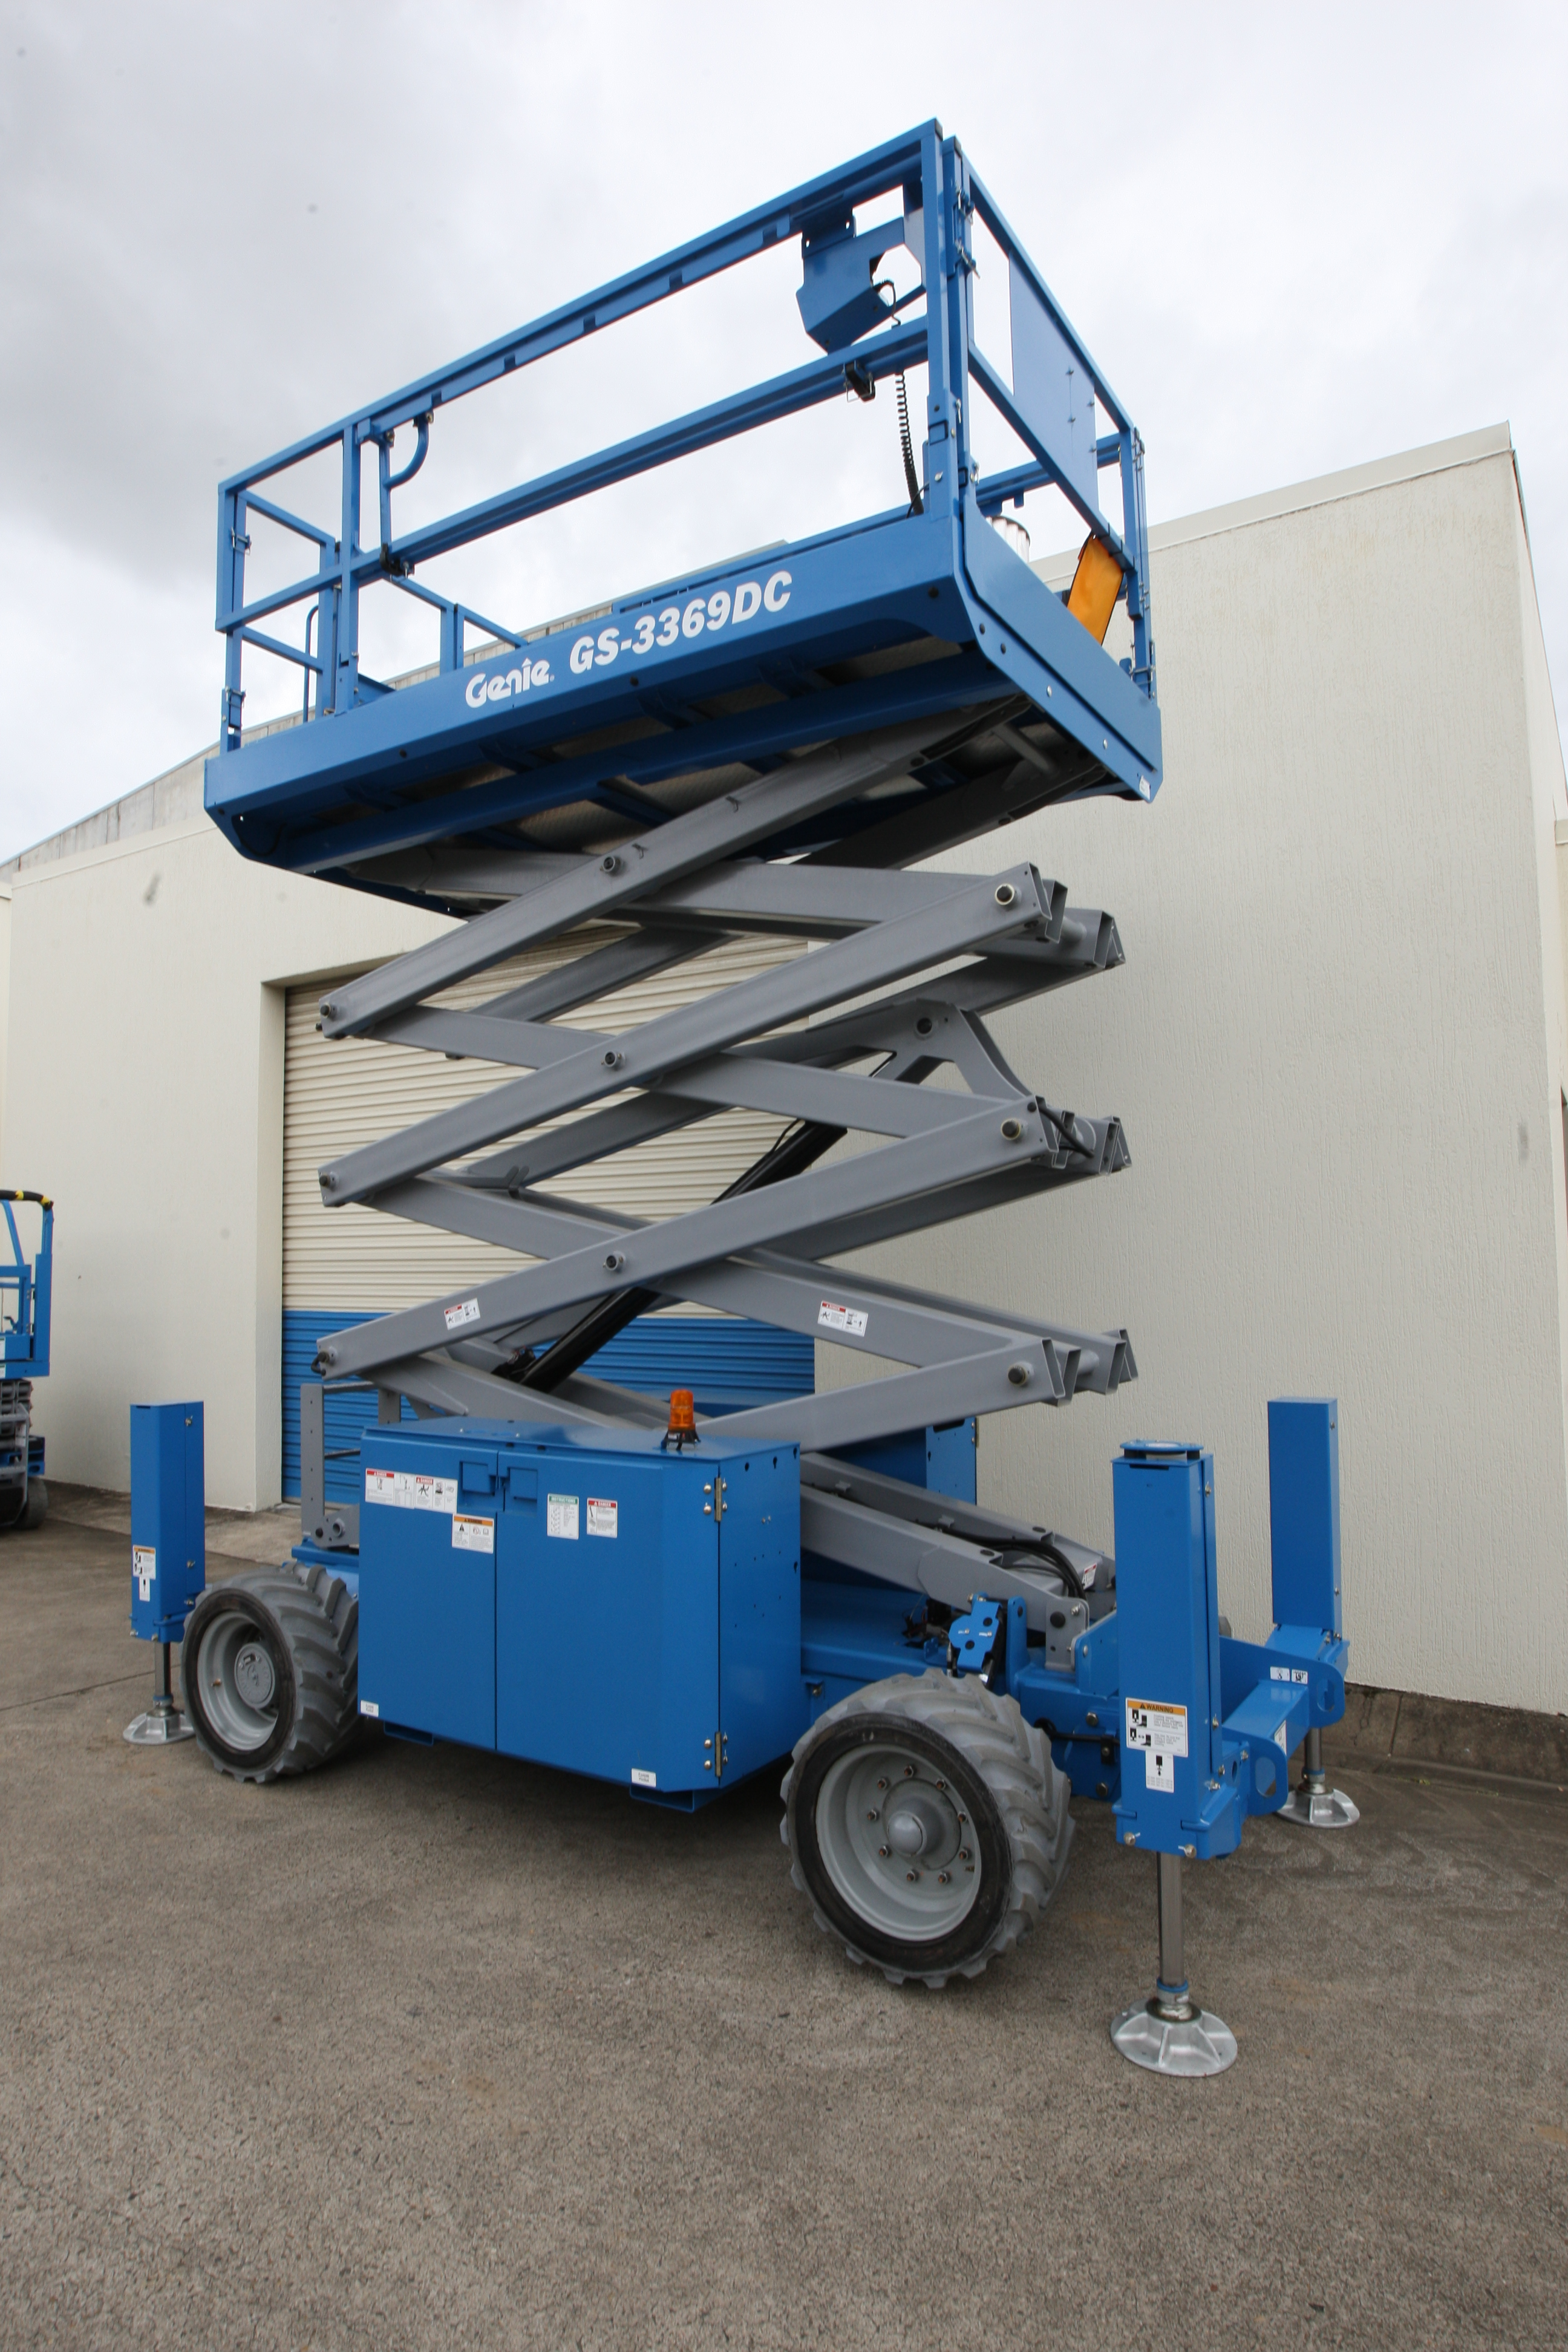 Genie GS 2669 DC - GS 3269 DC Electric Scissor Lifts